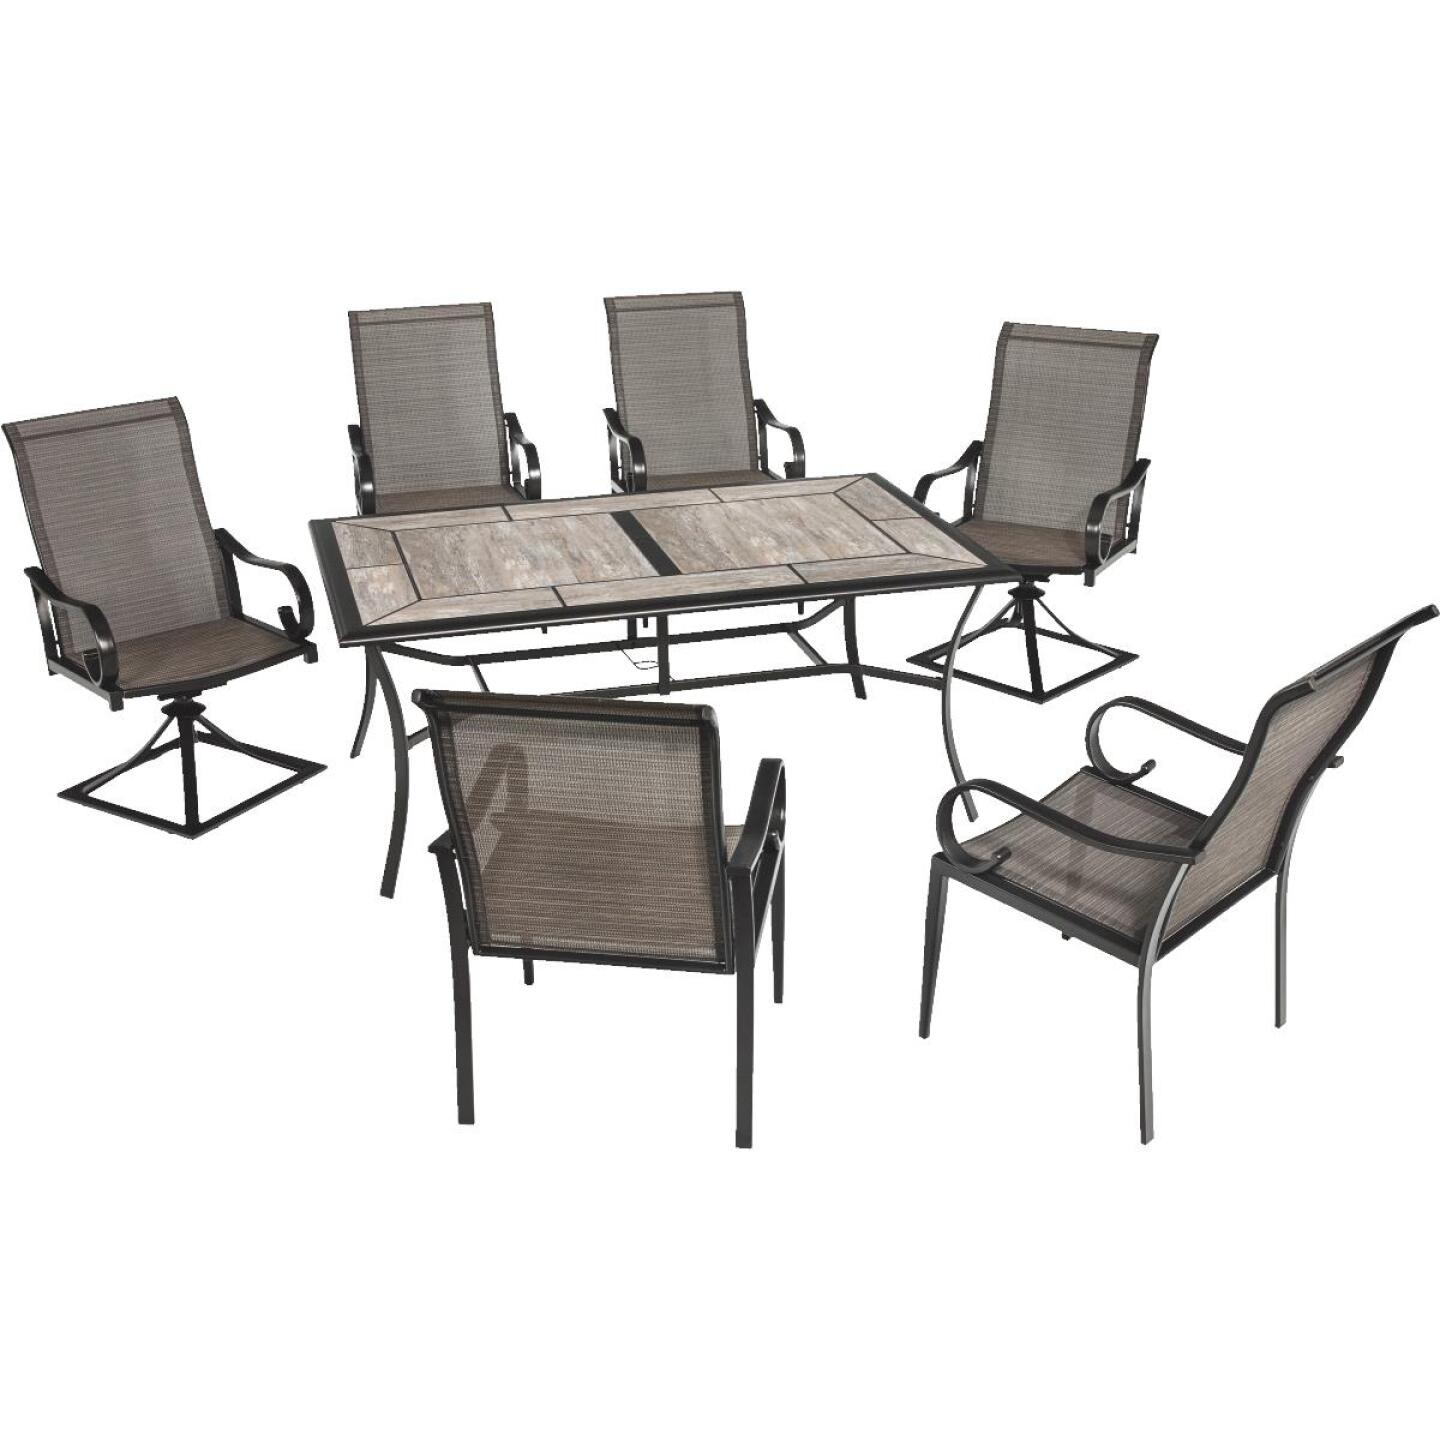 Outdoor Expressions Berkshire 7-Piece Dining Set Image 191